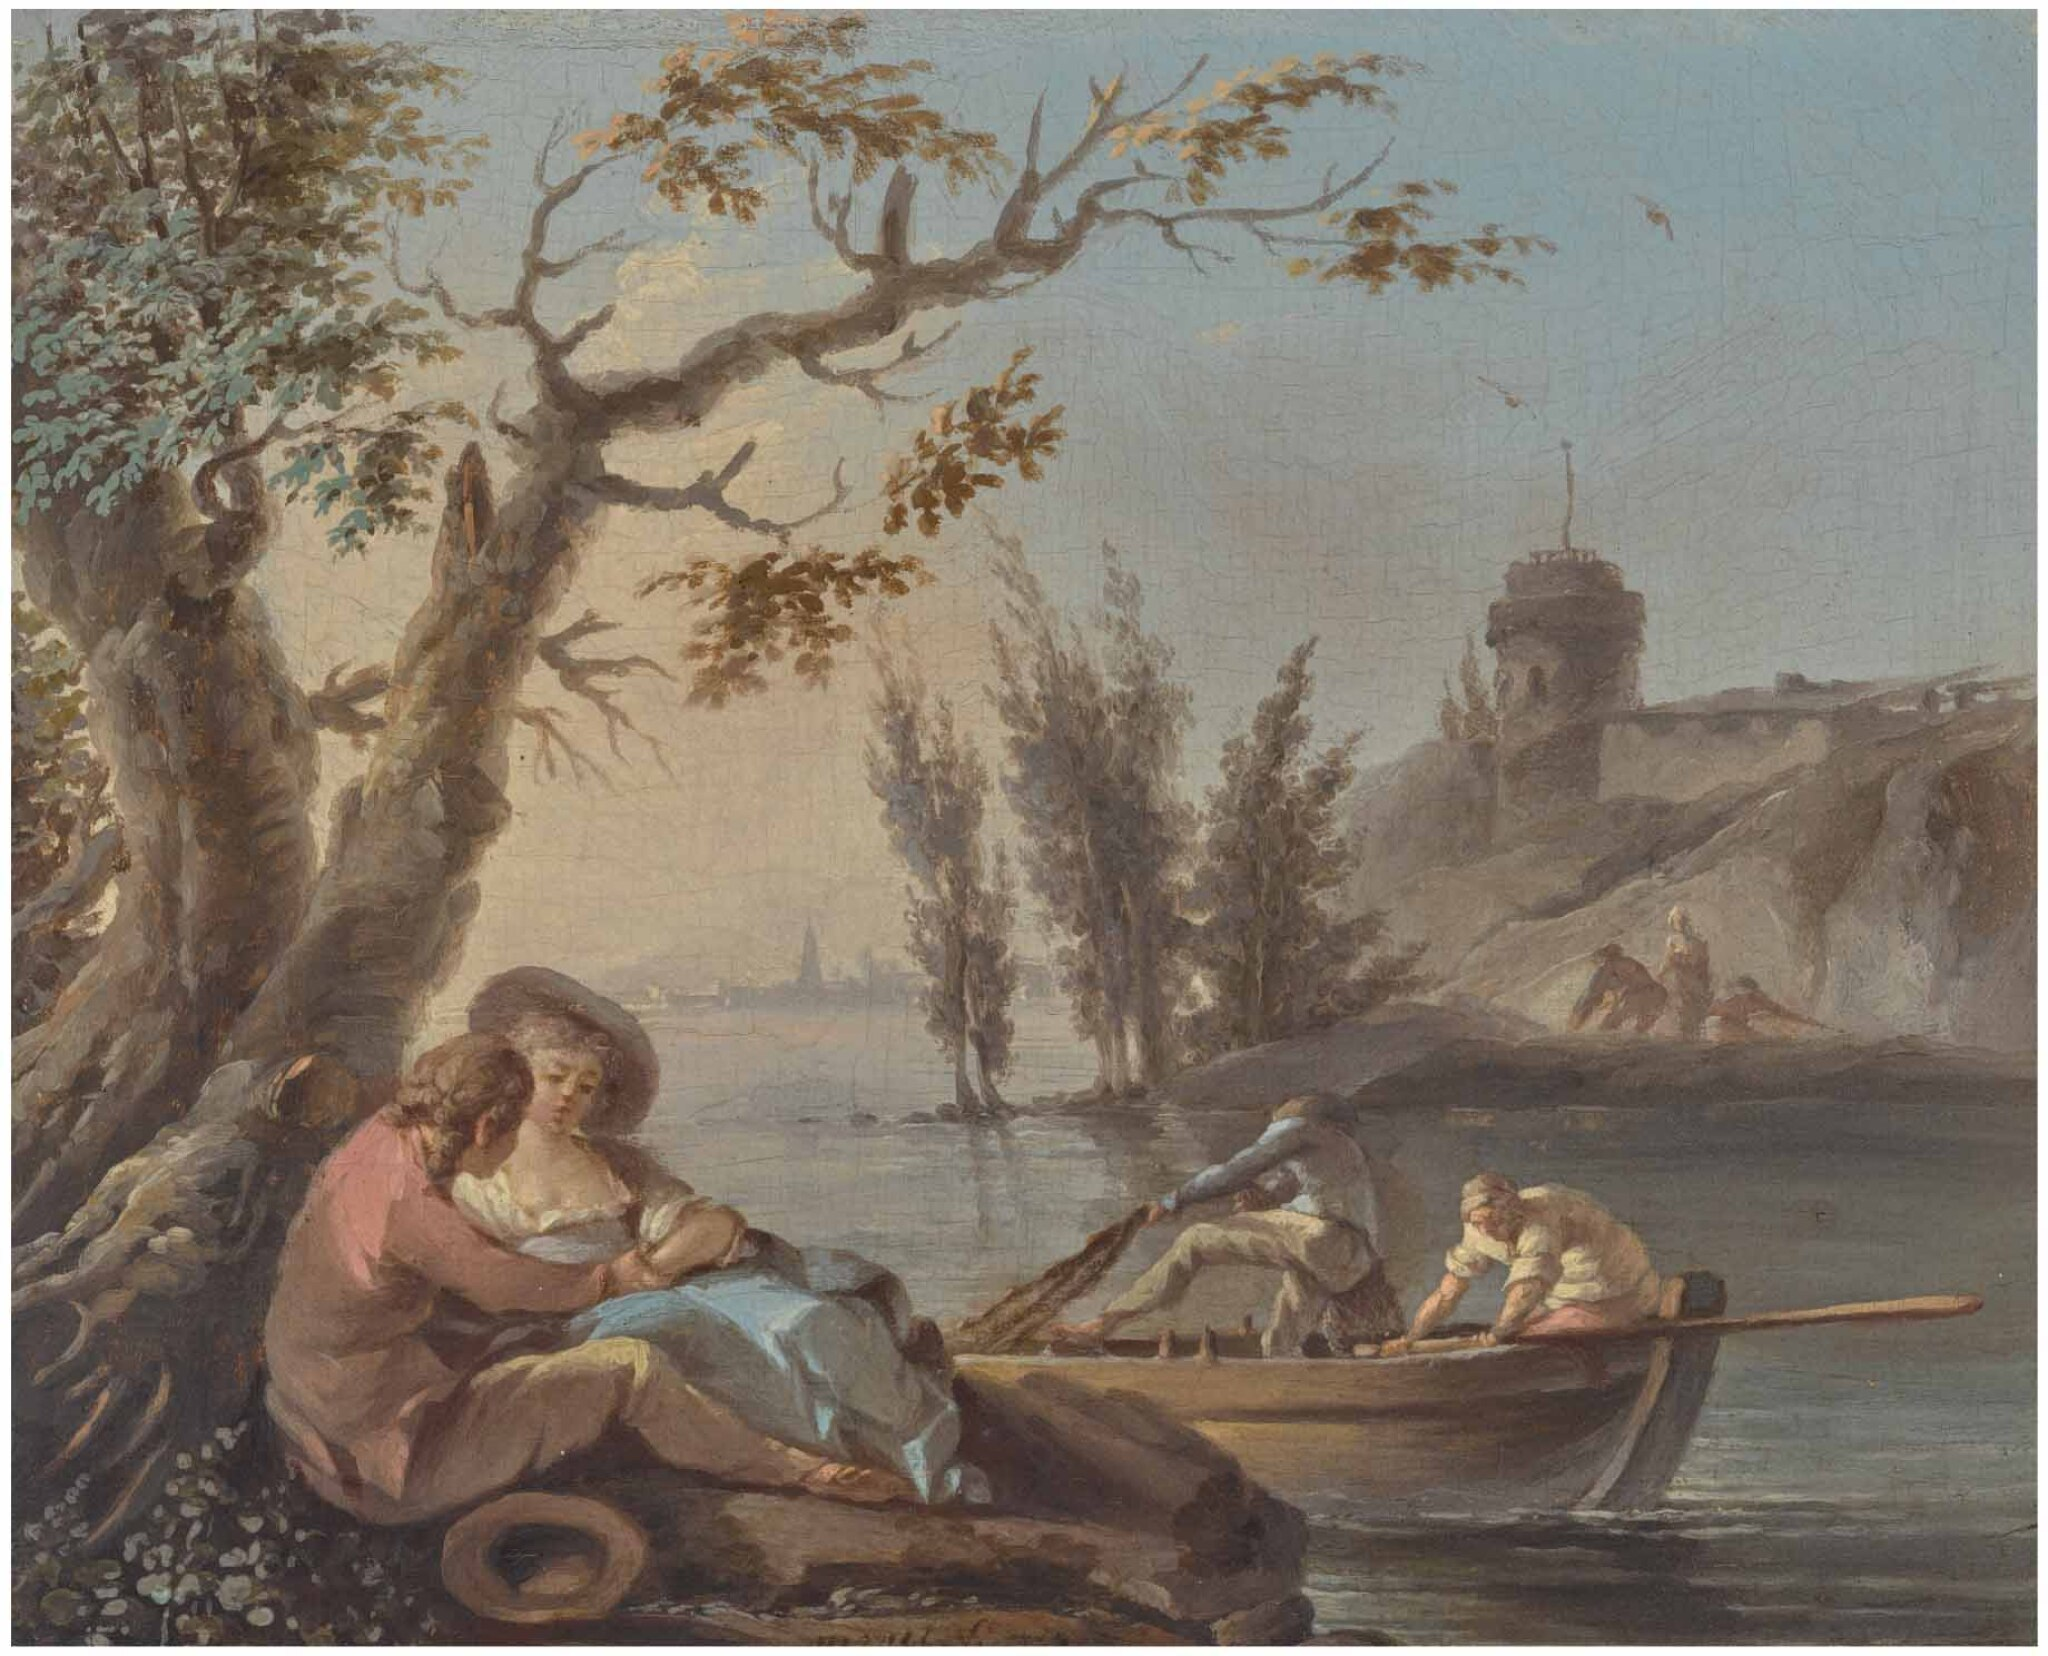 View full screen - View 1 of Lot 30. STUDIO OF CLAUDE-JOSEPH VERNET   A COUPLE EMBRACING BENEATH A TREE, NEAR A CALM WATERWAY WITH FIGURES IN A BOAT, AND A ROCKY SHORE BEYOND.